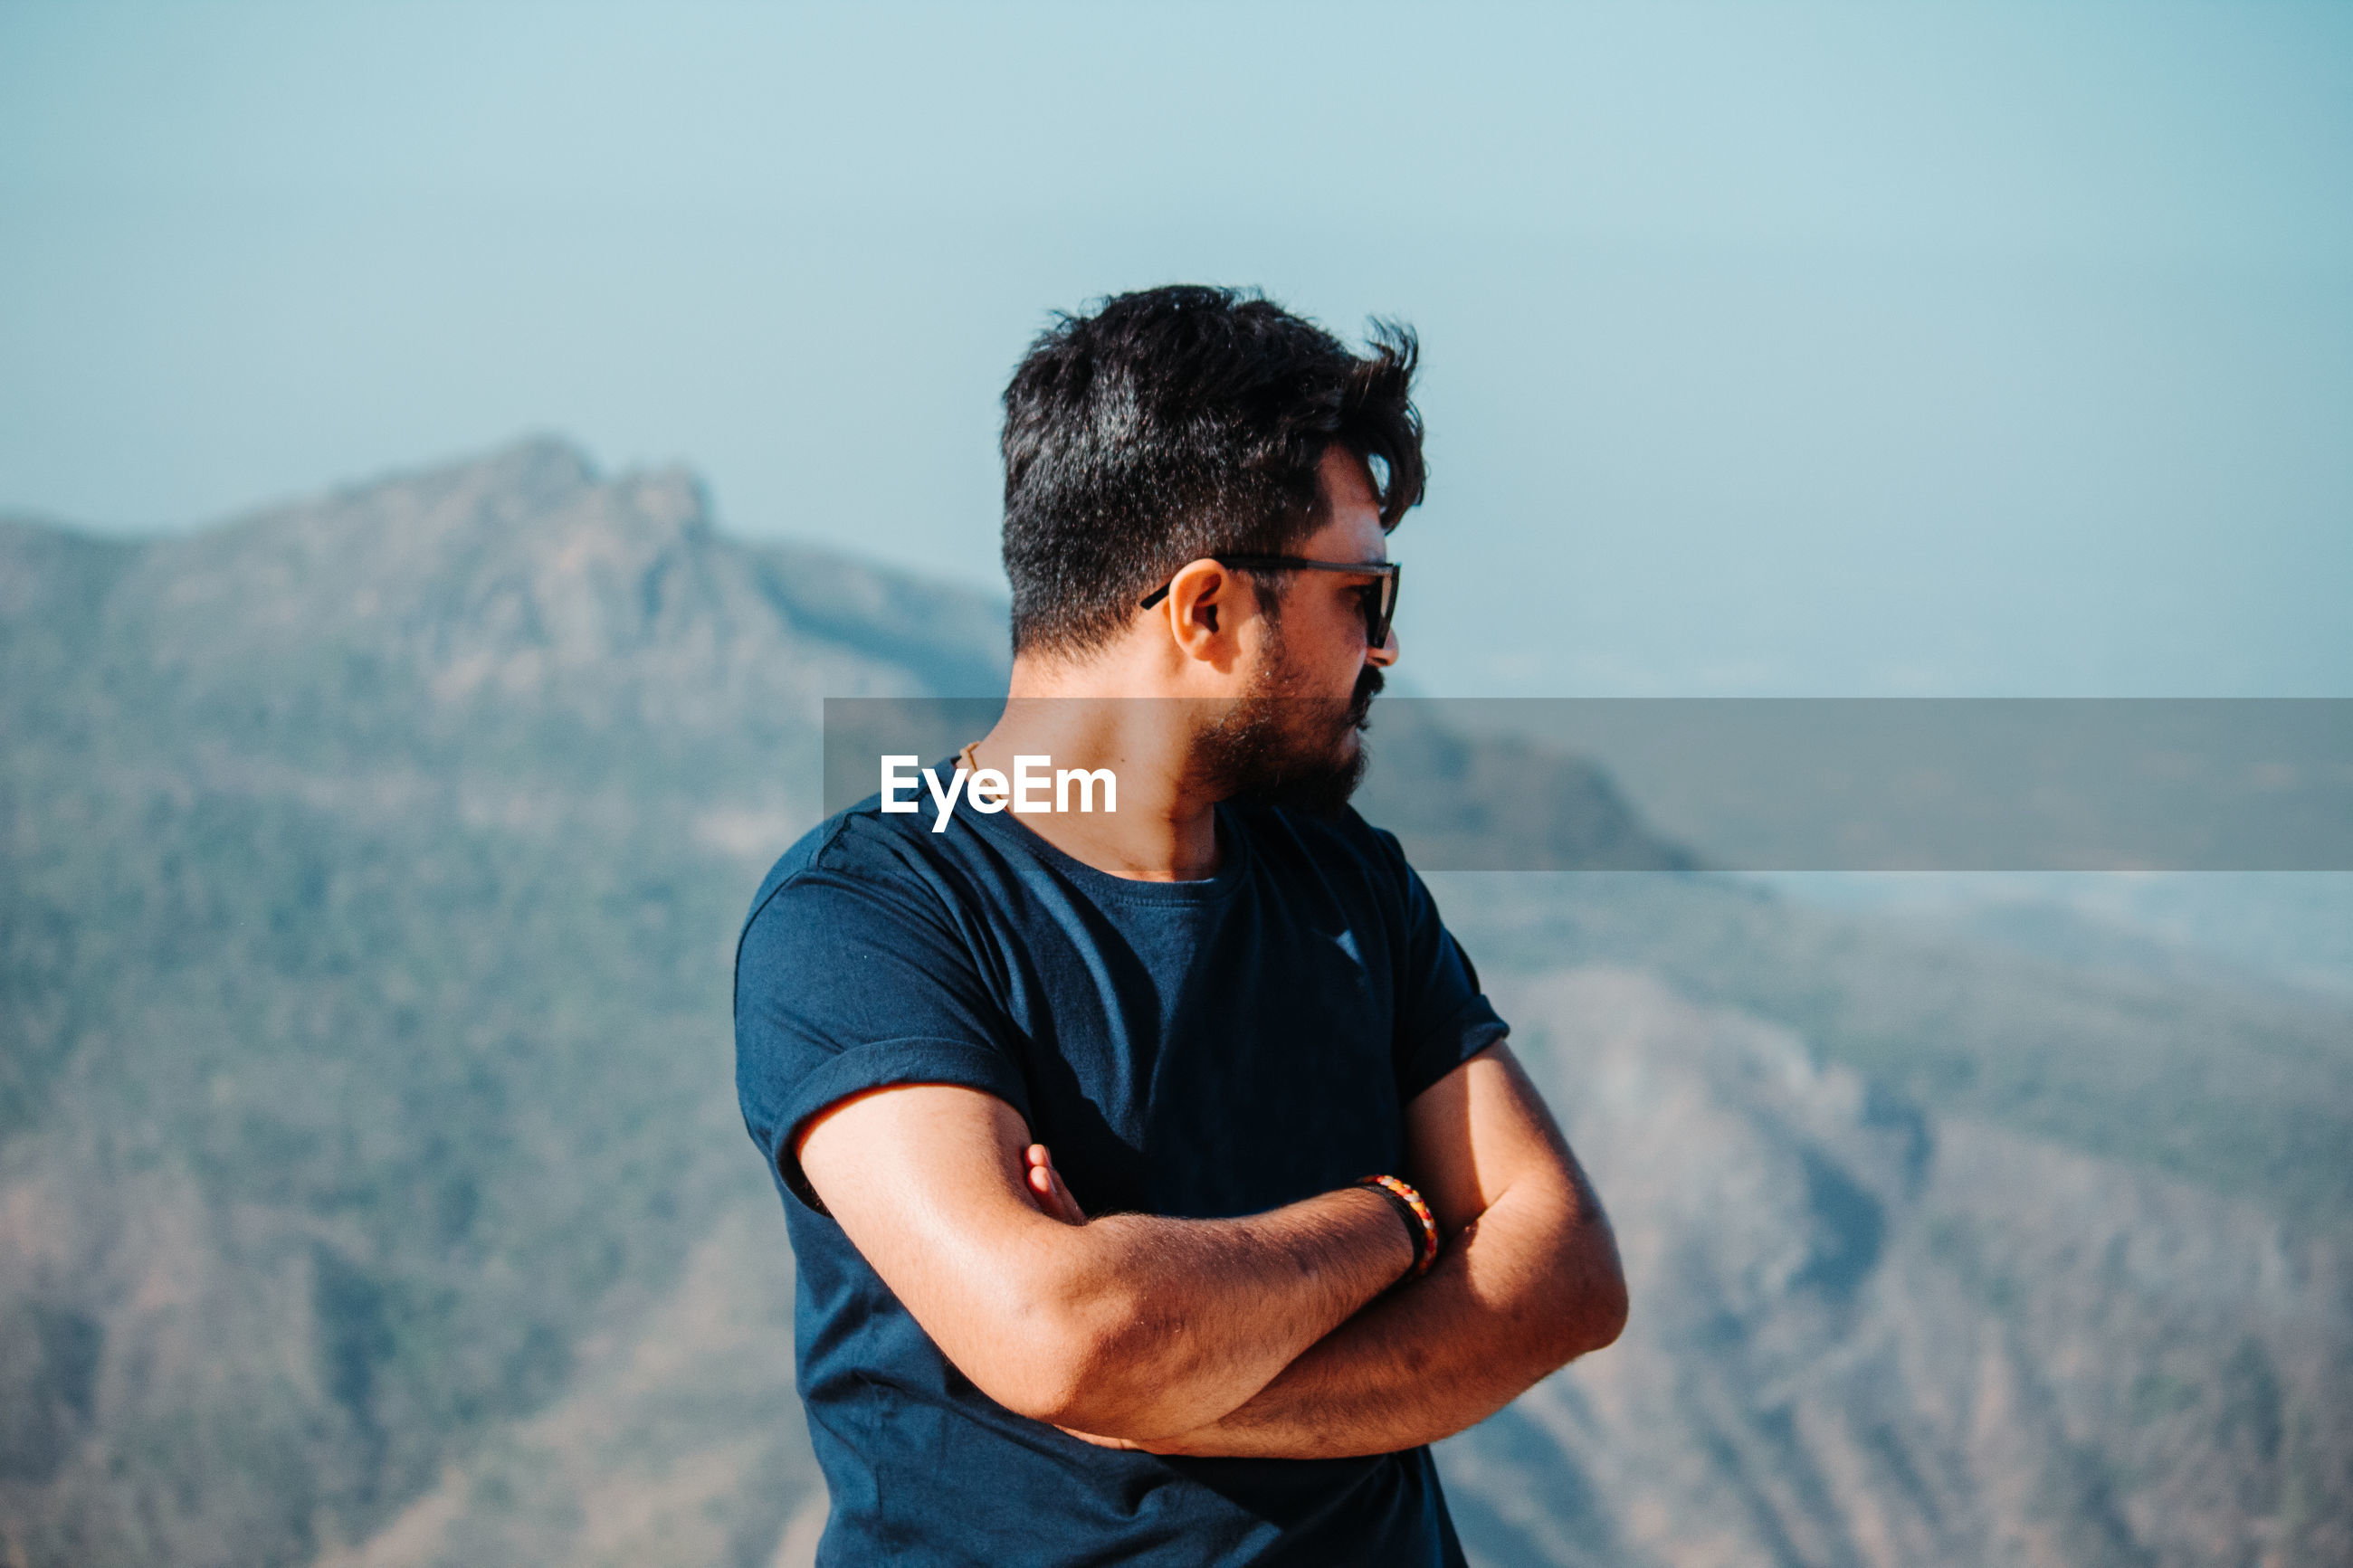 YOUNG MAN WEARING SUNGLASSES STANDING BY MOUNTAIN